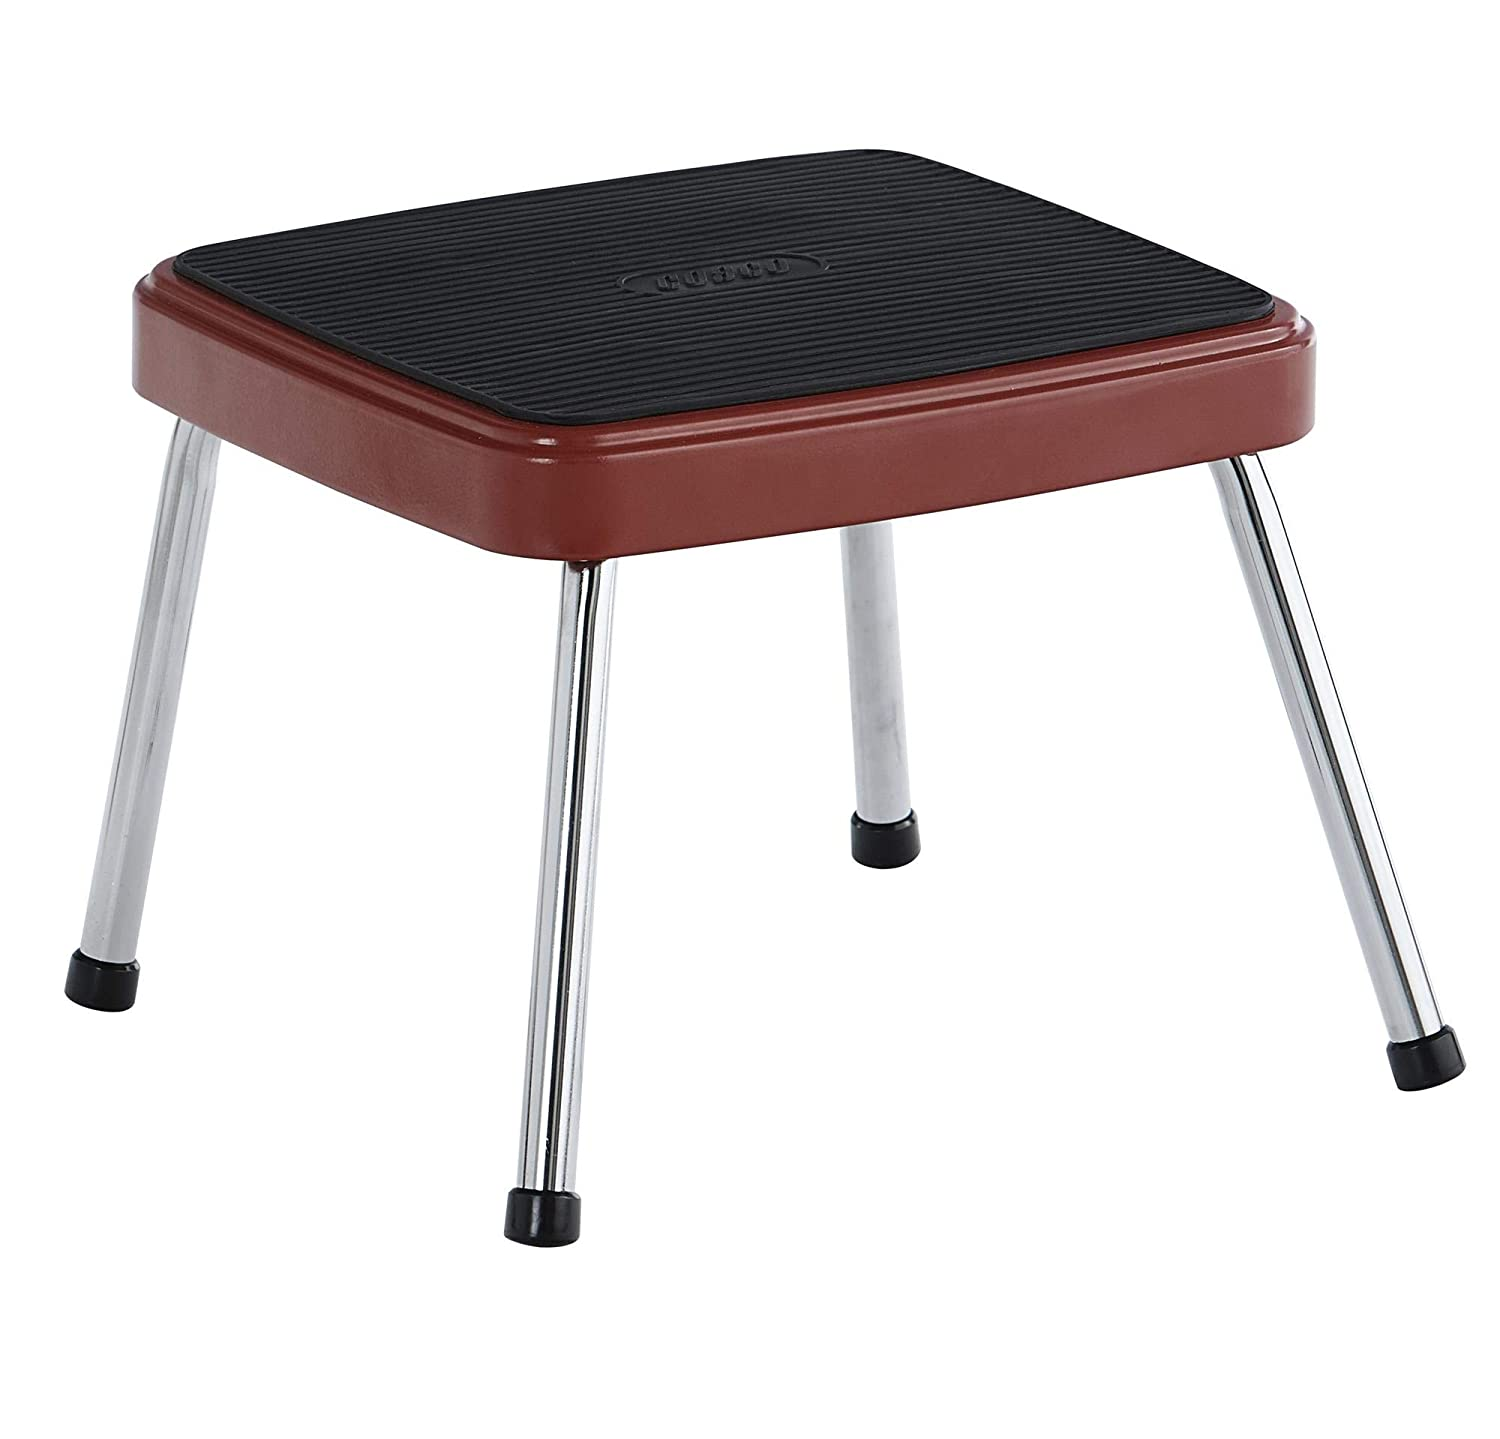 Step Stool Teal, one Pack COSCO 11330TEA1E Stylaire Retro Two